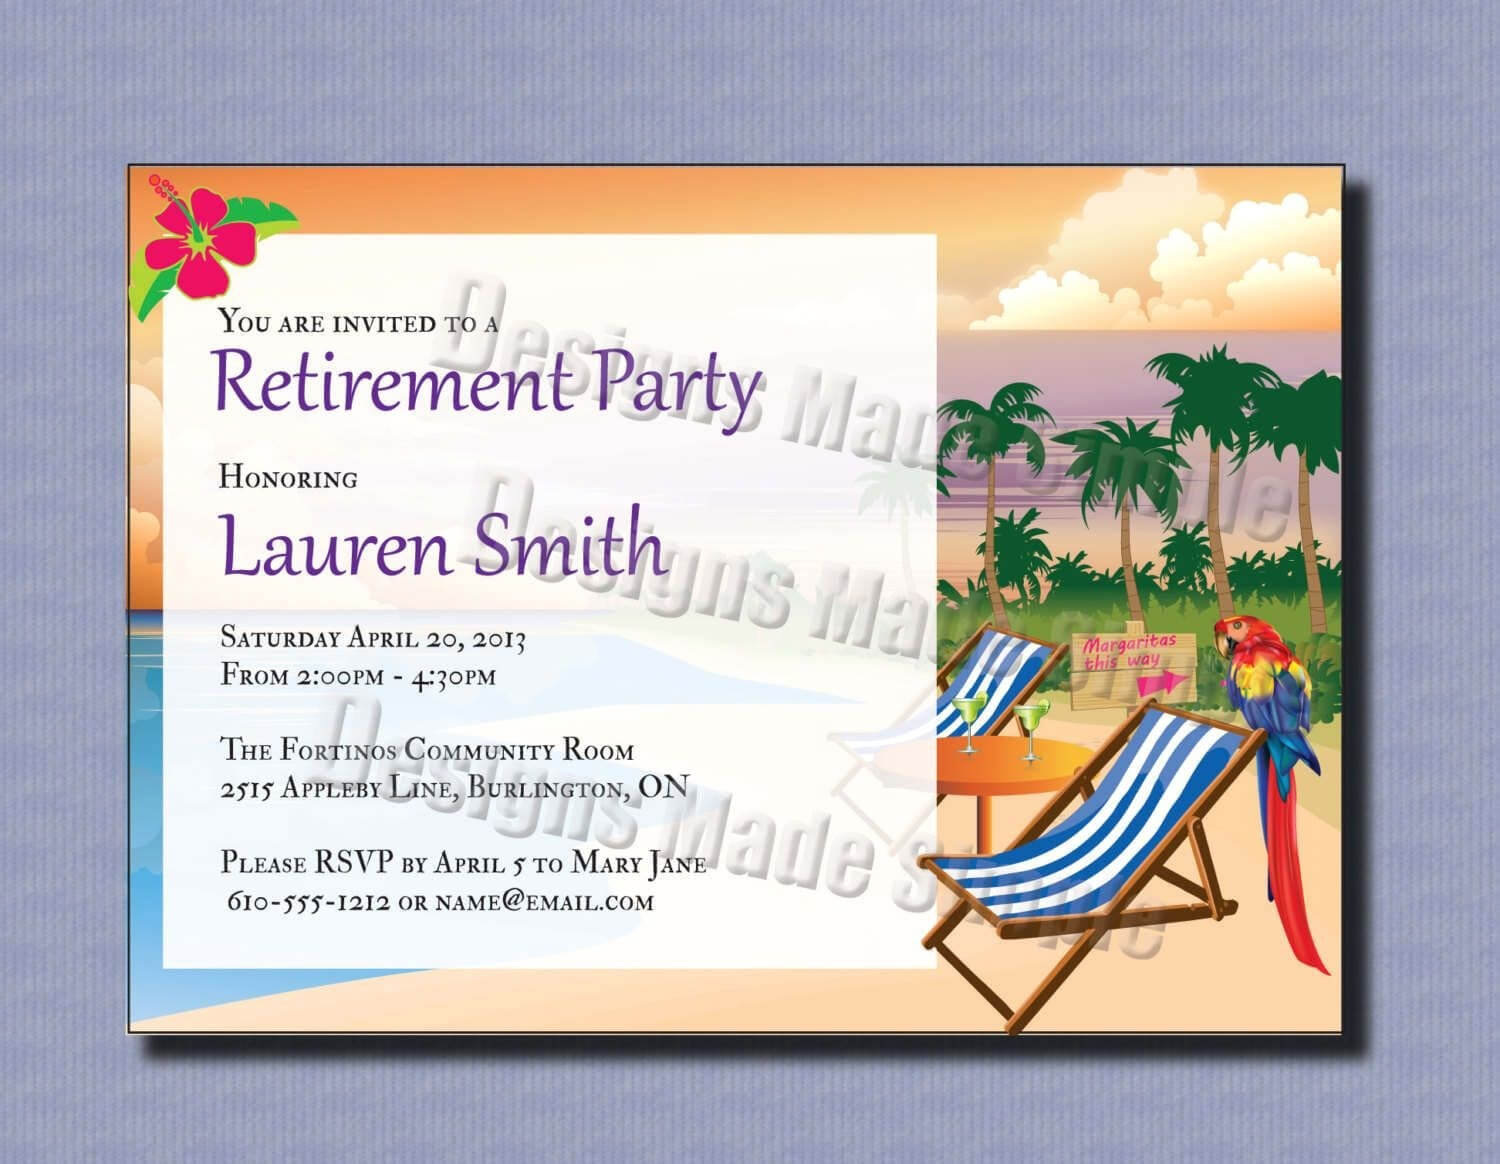 013 Retirement Party Invitation Template Download within Retirement Card Template